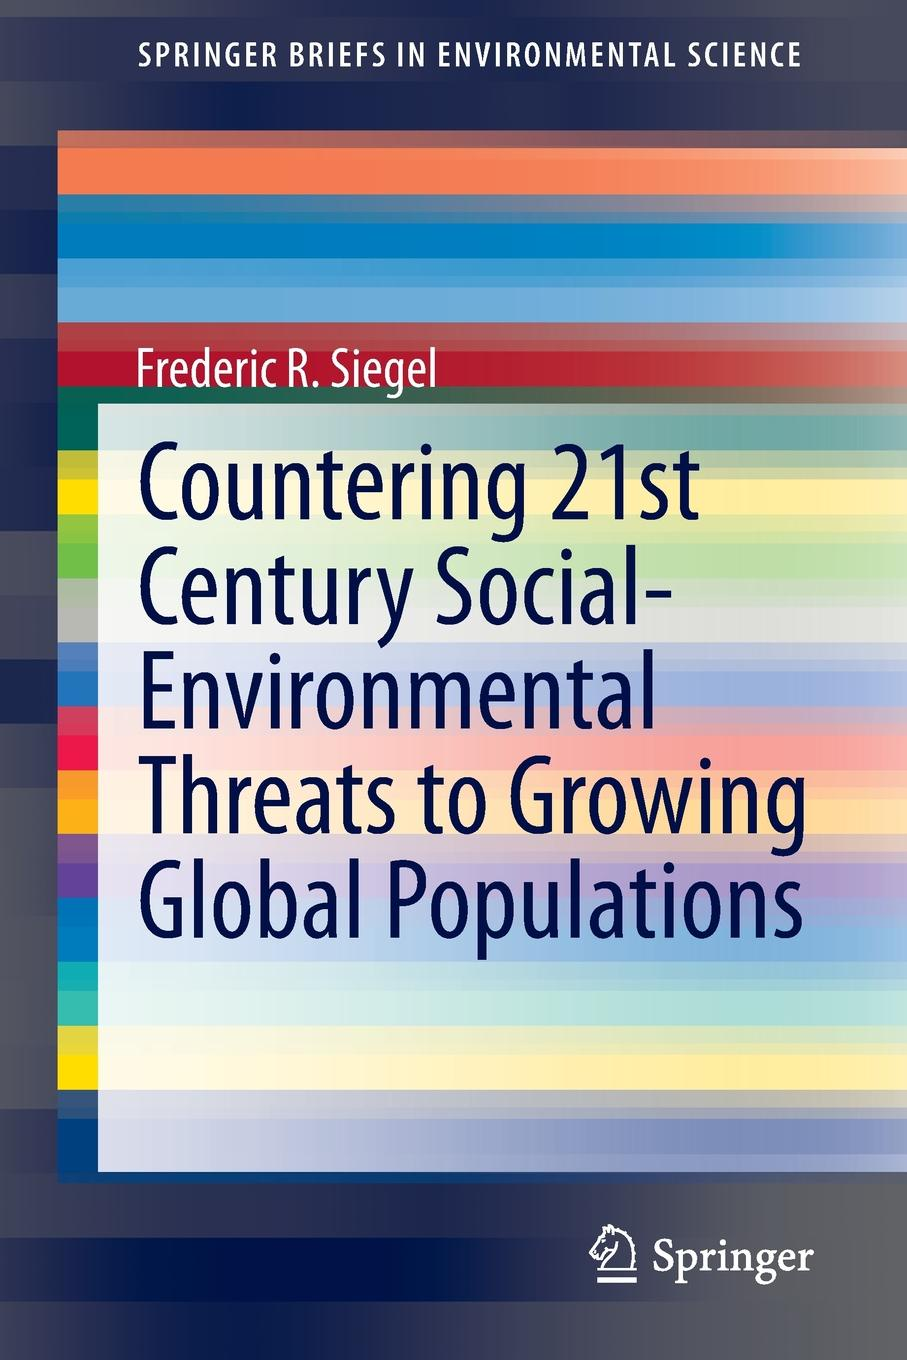 Frederic R. Siegel Countering 21st Century Social-Environmental Threats to Growing Global Populations keshra sangwal nucleation and crystal growth metastability of solutions and melts